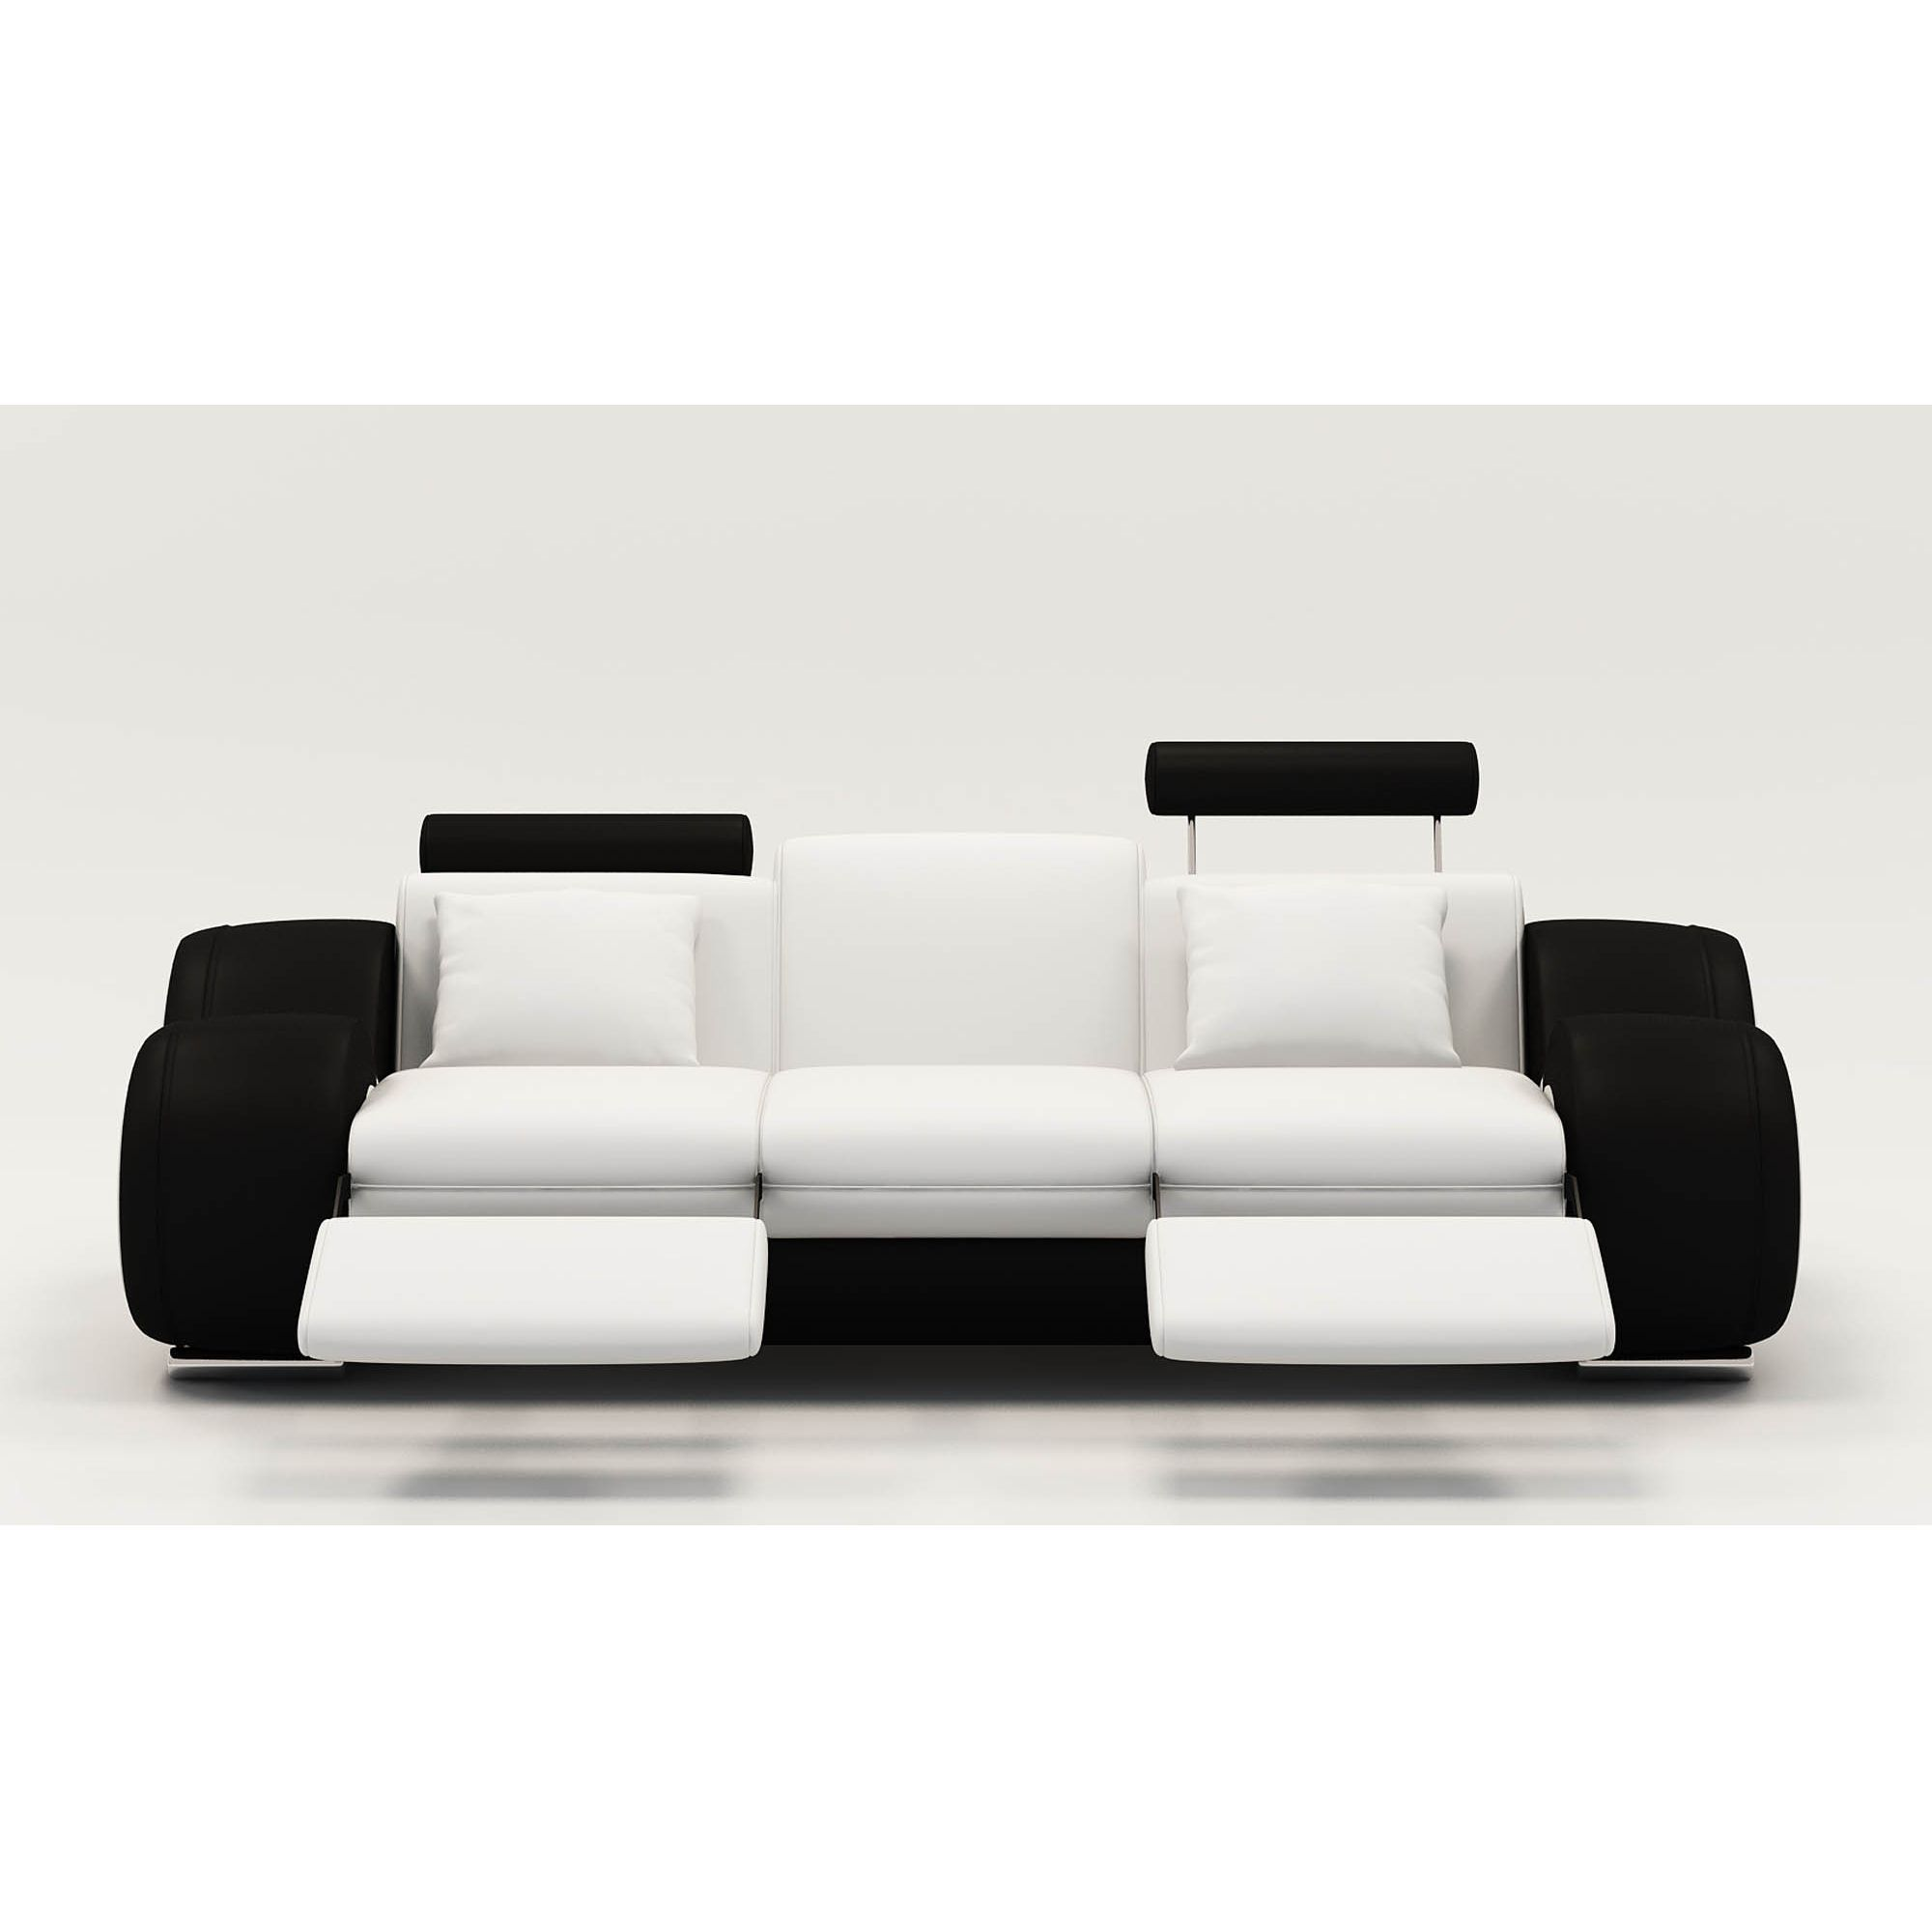 Deco in paris ensemble canape relax design 3 2 places blanc et noir oslo os - Canape 2 places design ...